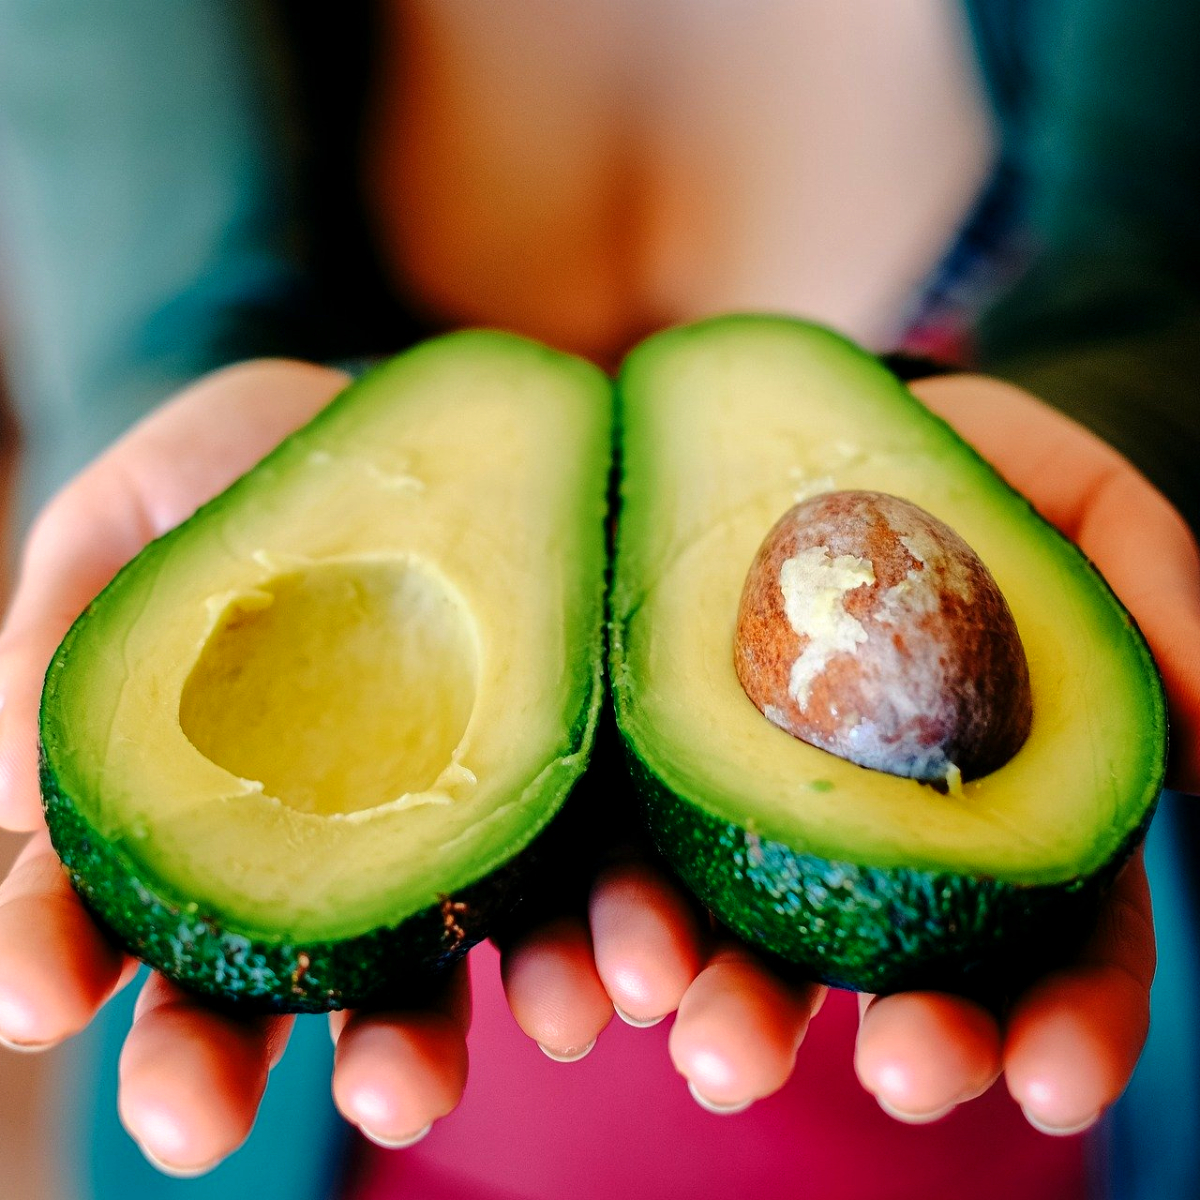 Sources of Good Fats: 5 best food items that are loaded with healthy fats